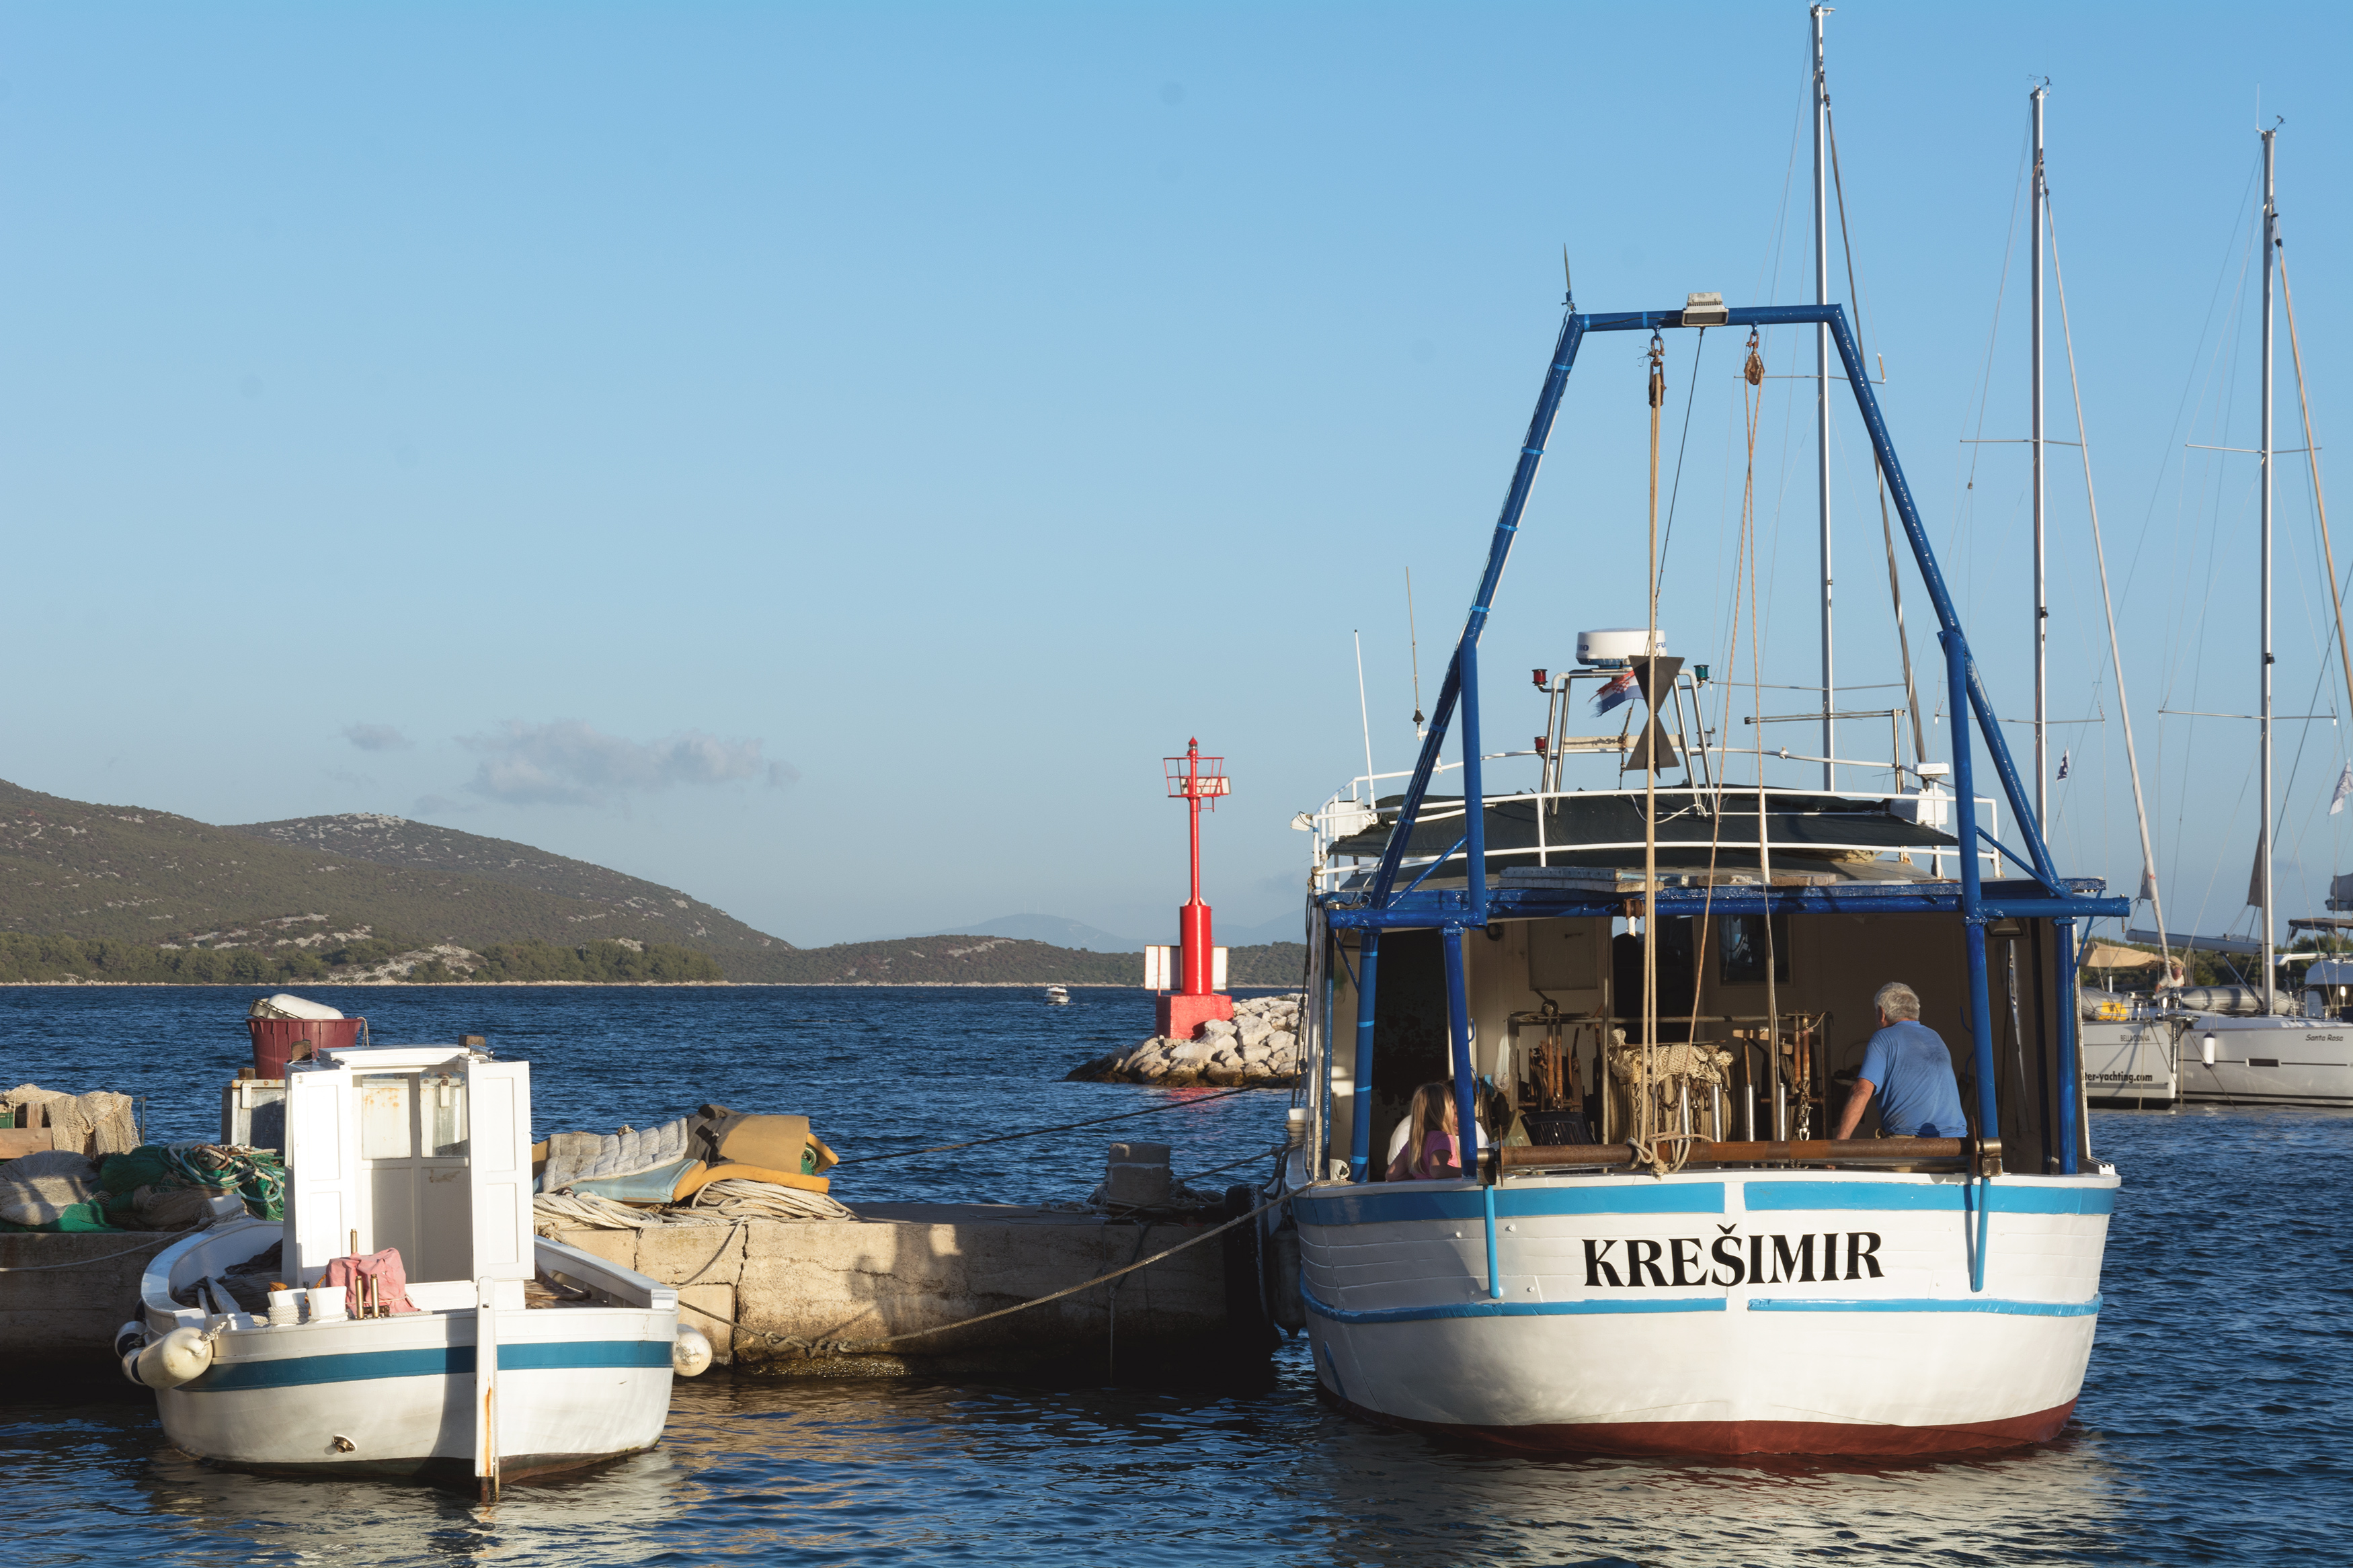 Free Image: Fishing Boats in a Harbour | Libreshot Public Domain Photos